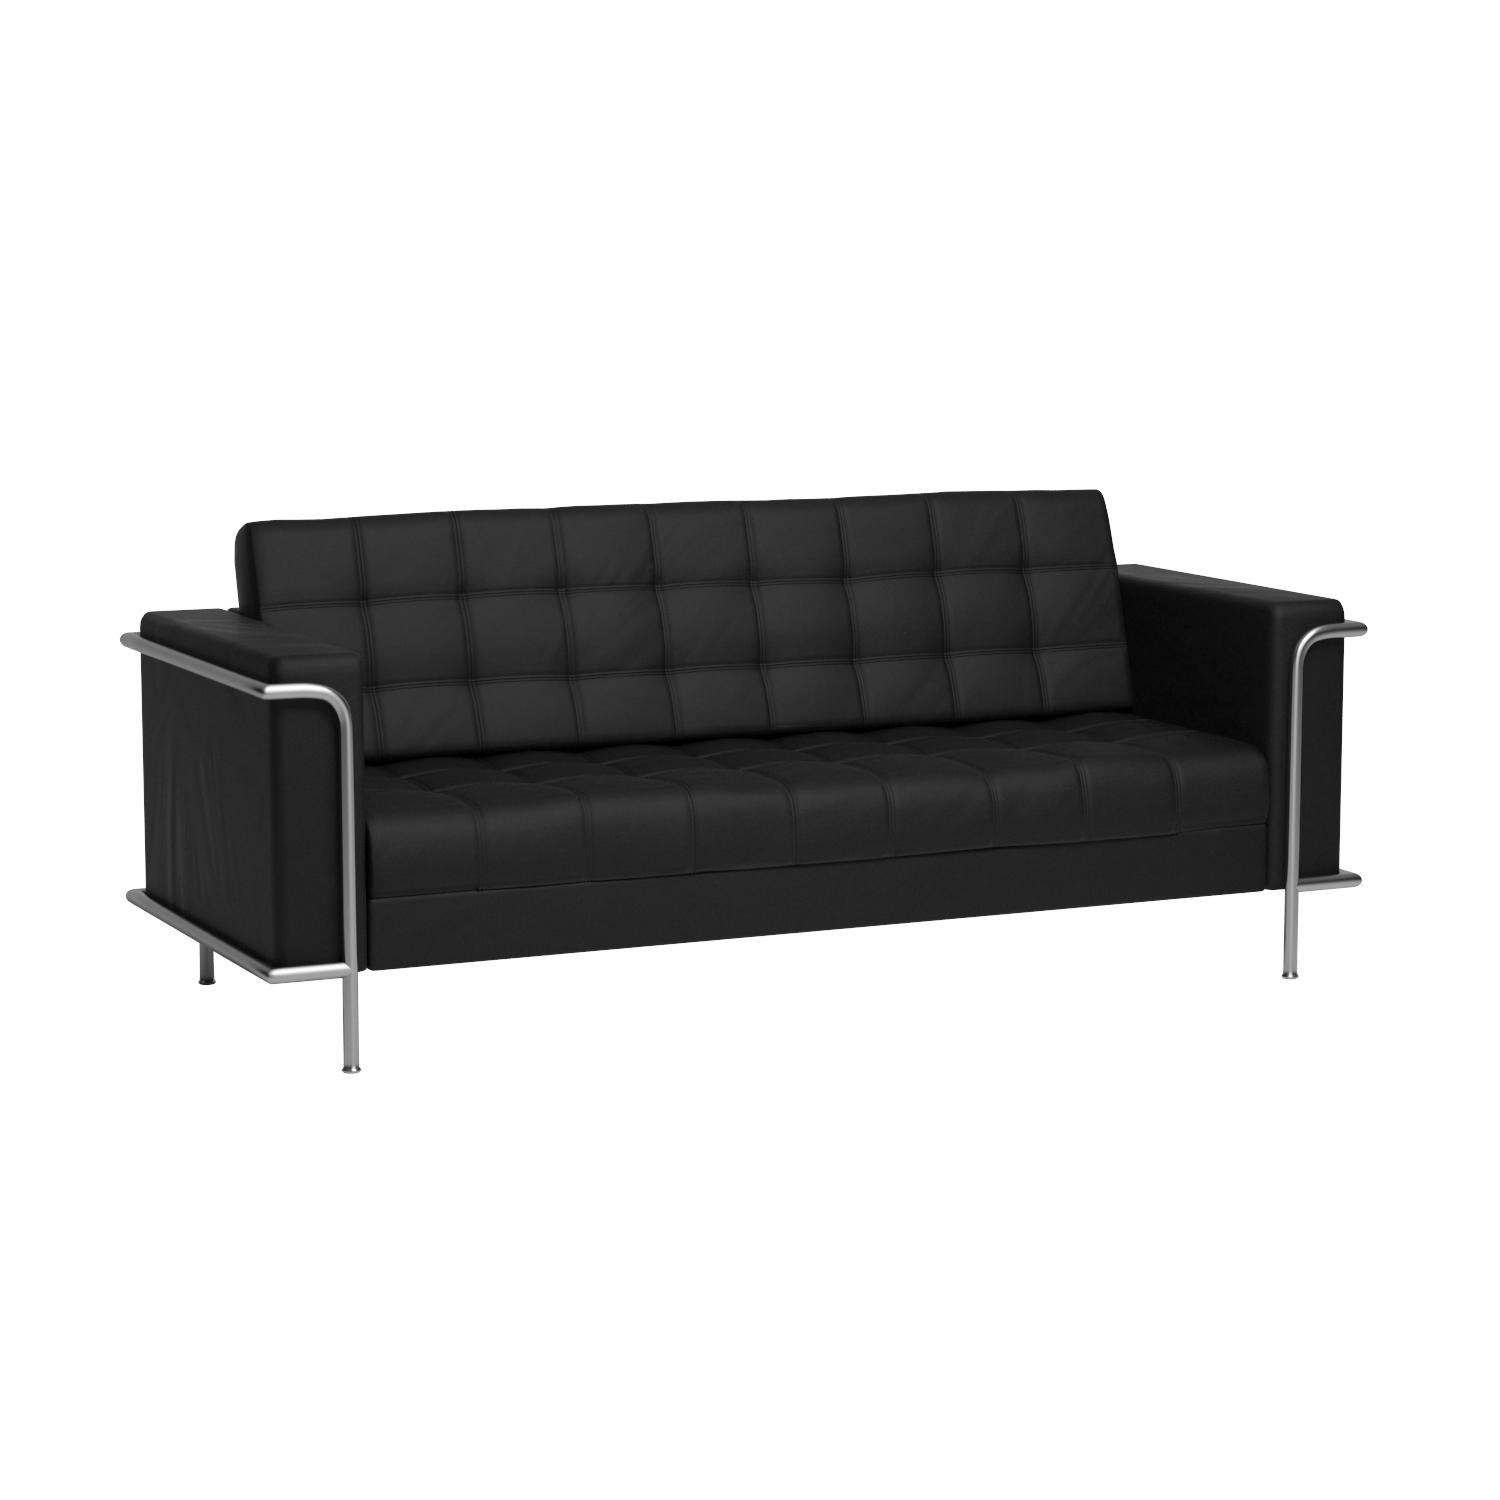 Amazon.com: Flash Furniture HERCULES Lesley Series Contemporary Black  Leather Sofa With Encasing Frame: Kitchen U0026 Dining